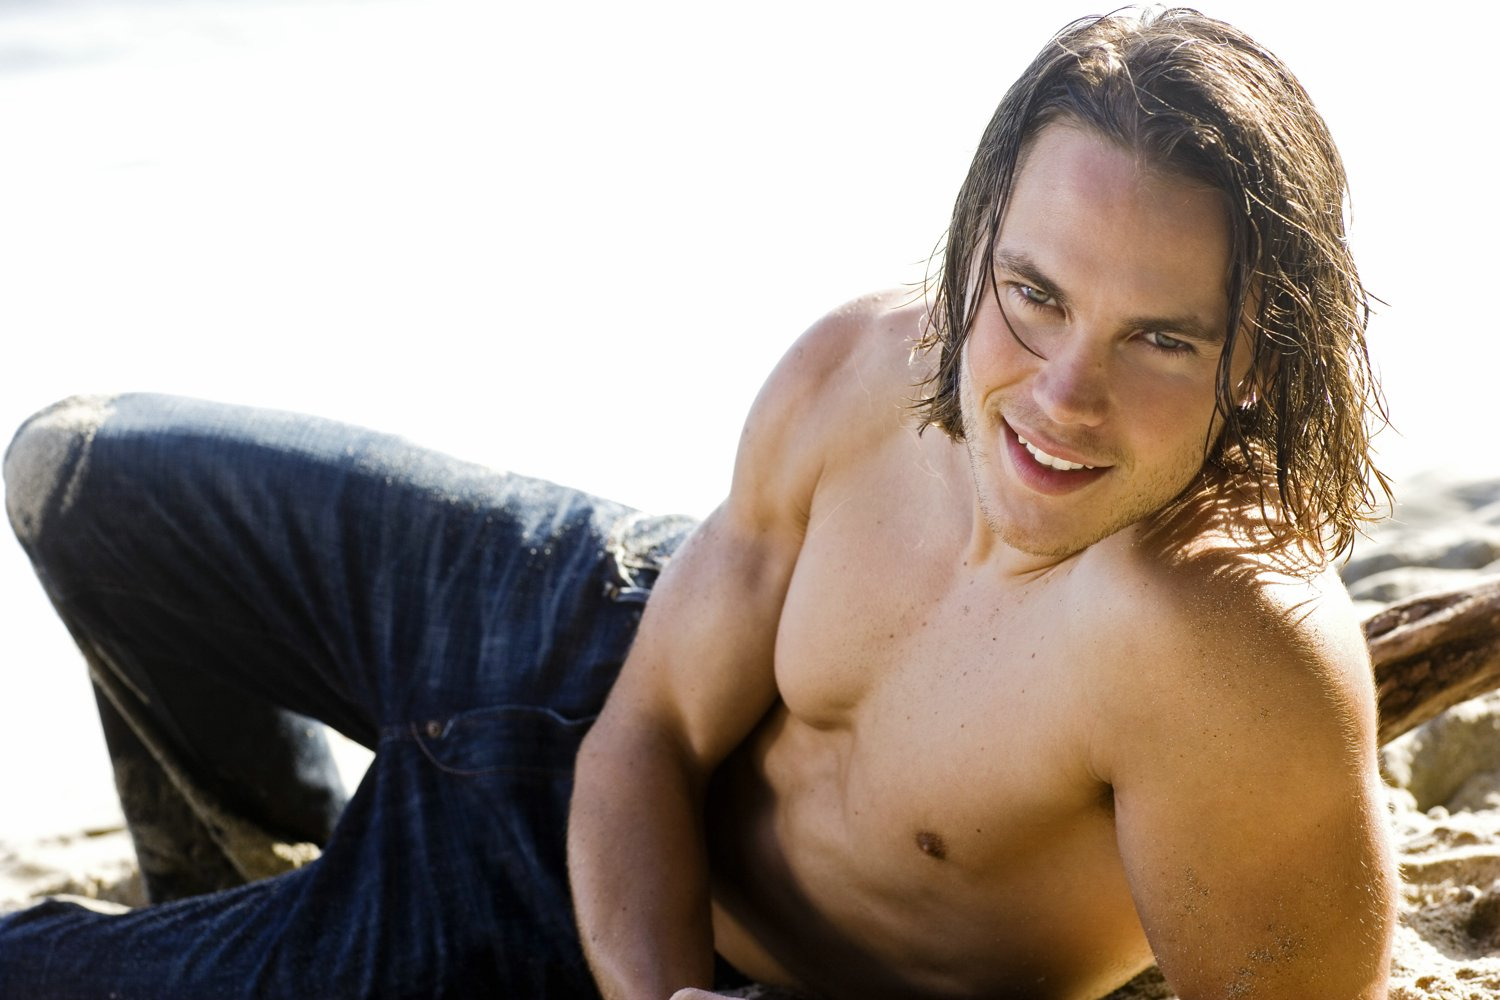 Taylor Kitsch - Taylor's Clothing/style Appreciation#2 ...  Taylor Kitsch Ripped